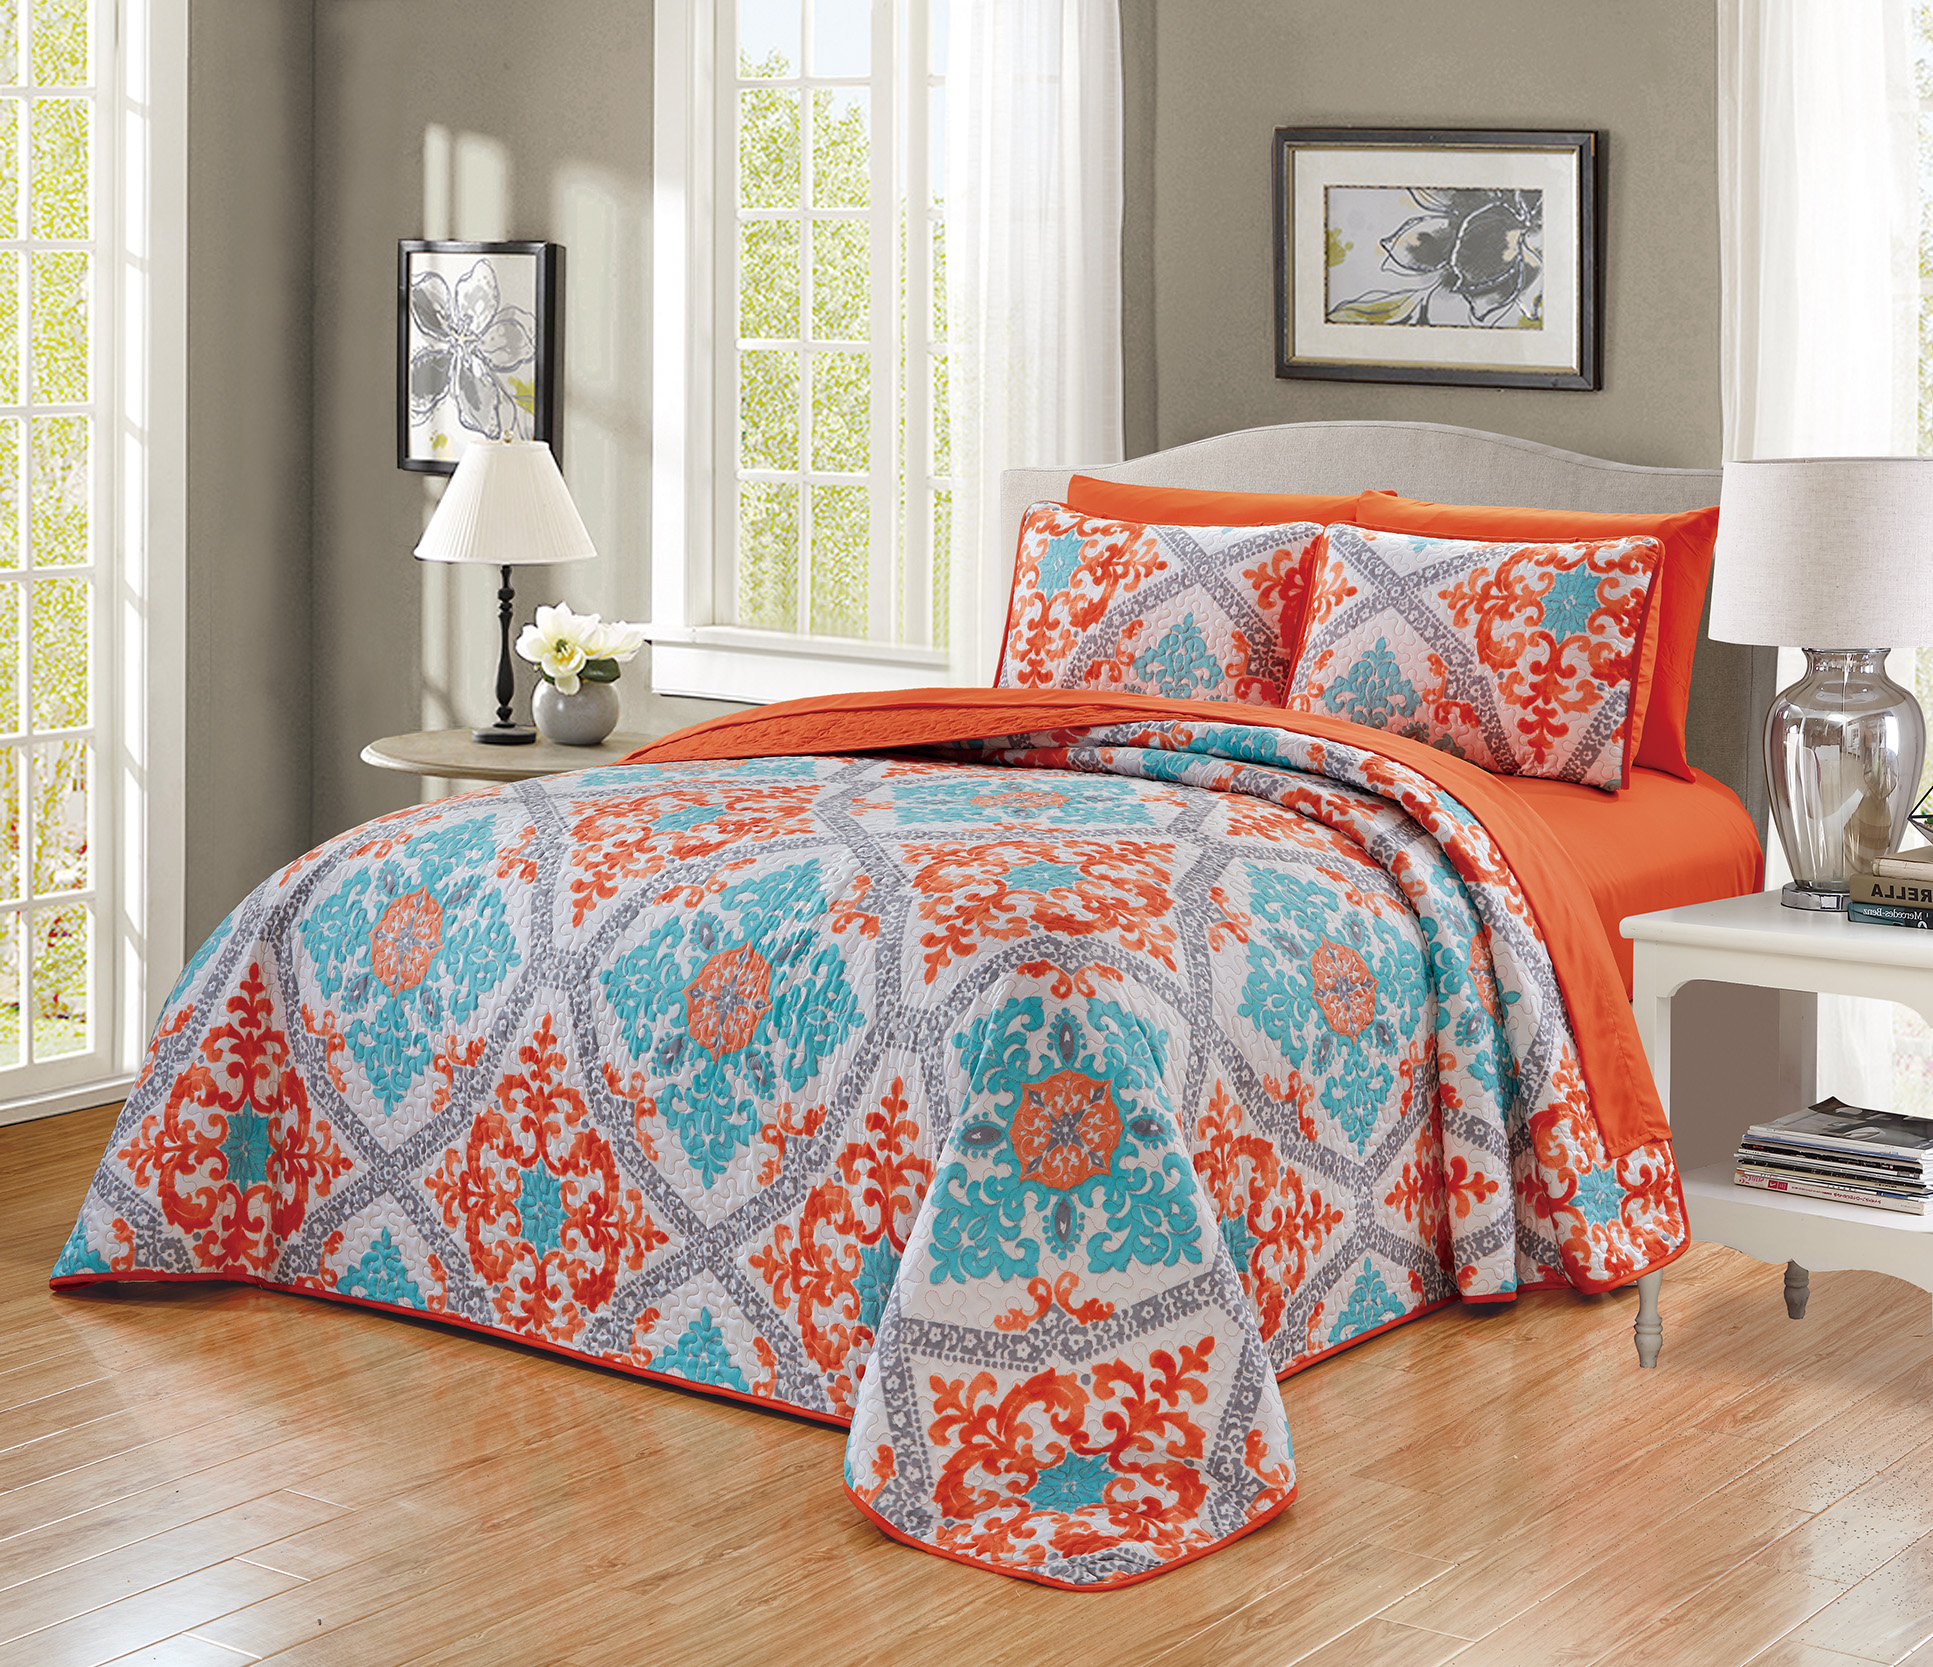 7 Piece Embroidered Thin Quilt Bedspread Set With Complete Sheet Set Turquoise Orange Mandala Design Micasa Shop